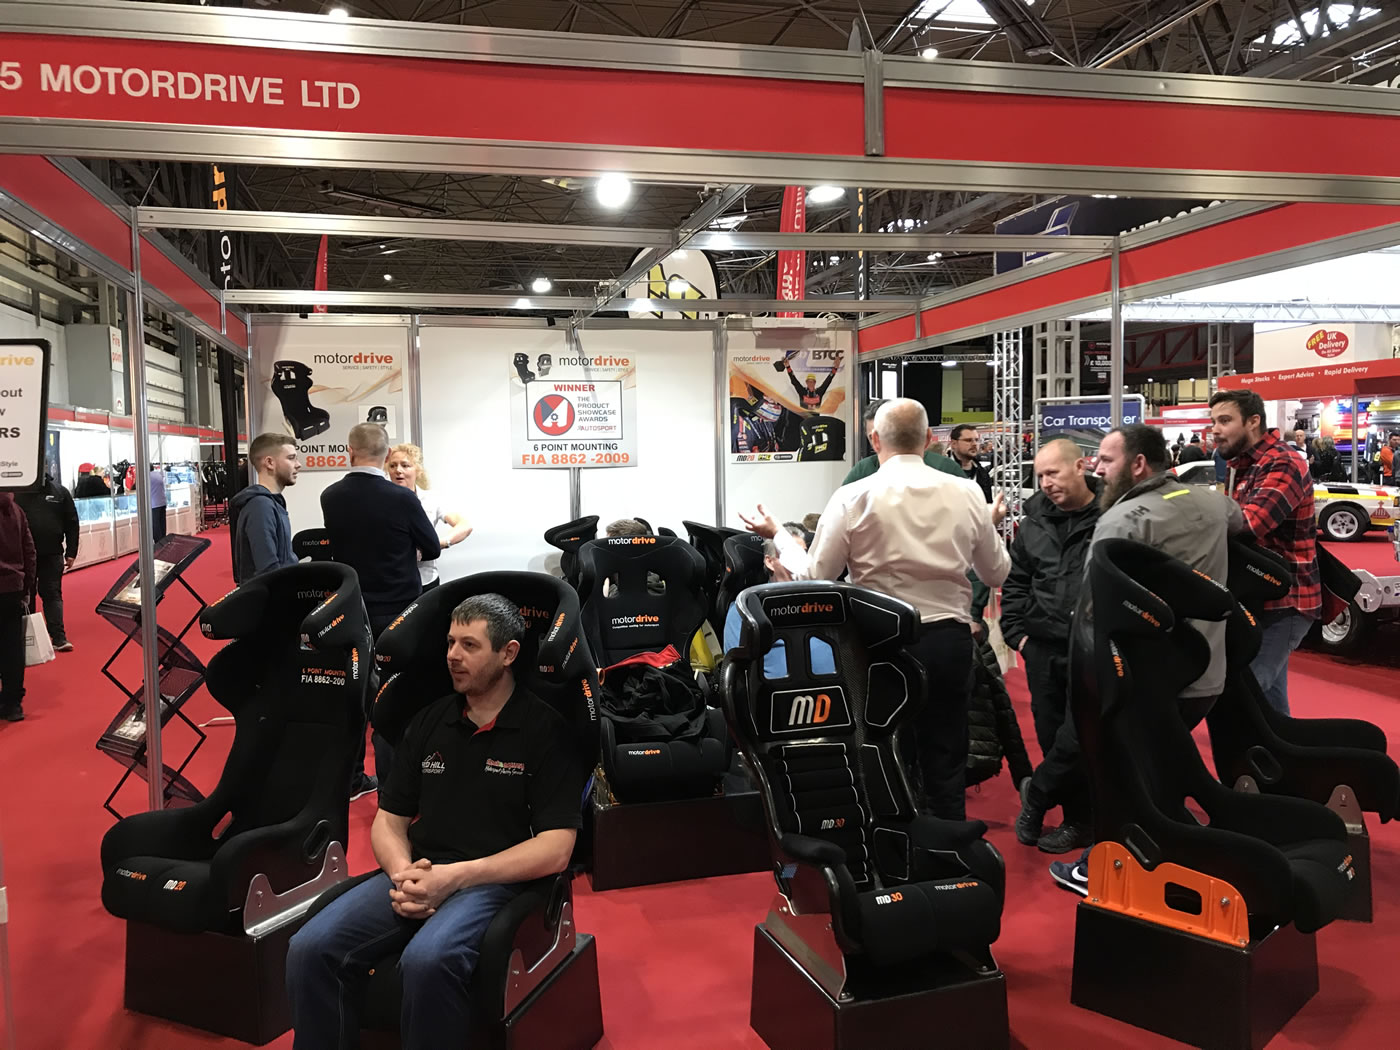 Motordrive Seats stand at the Autosport International show